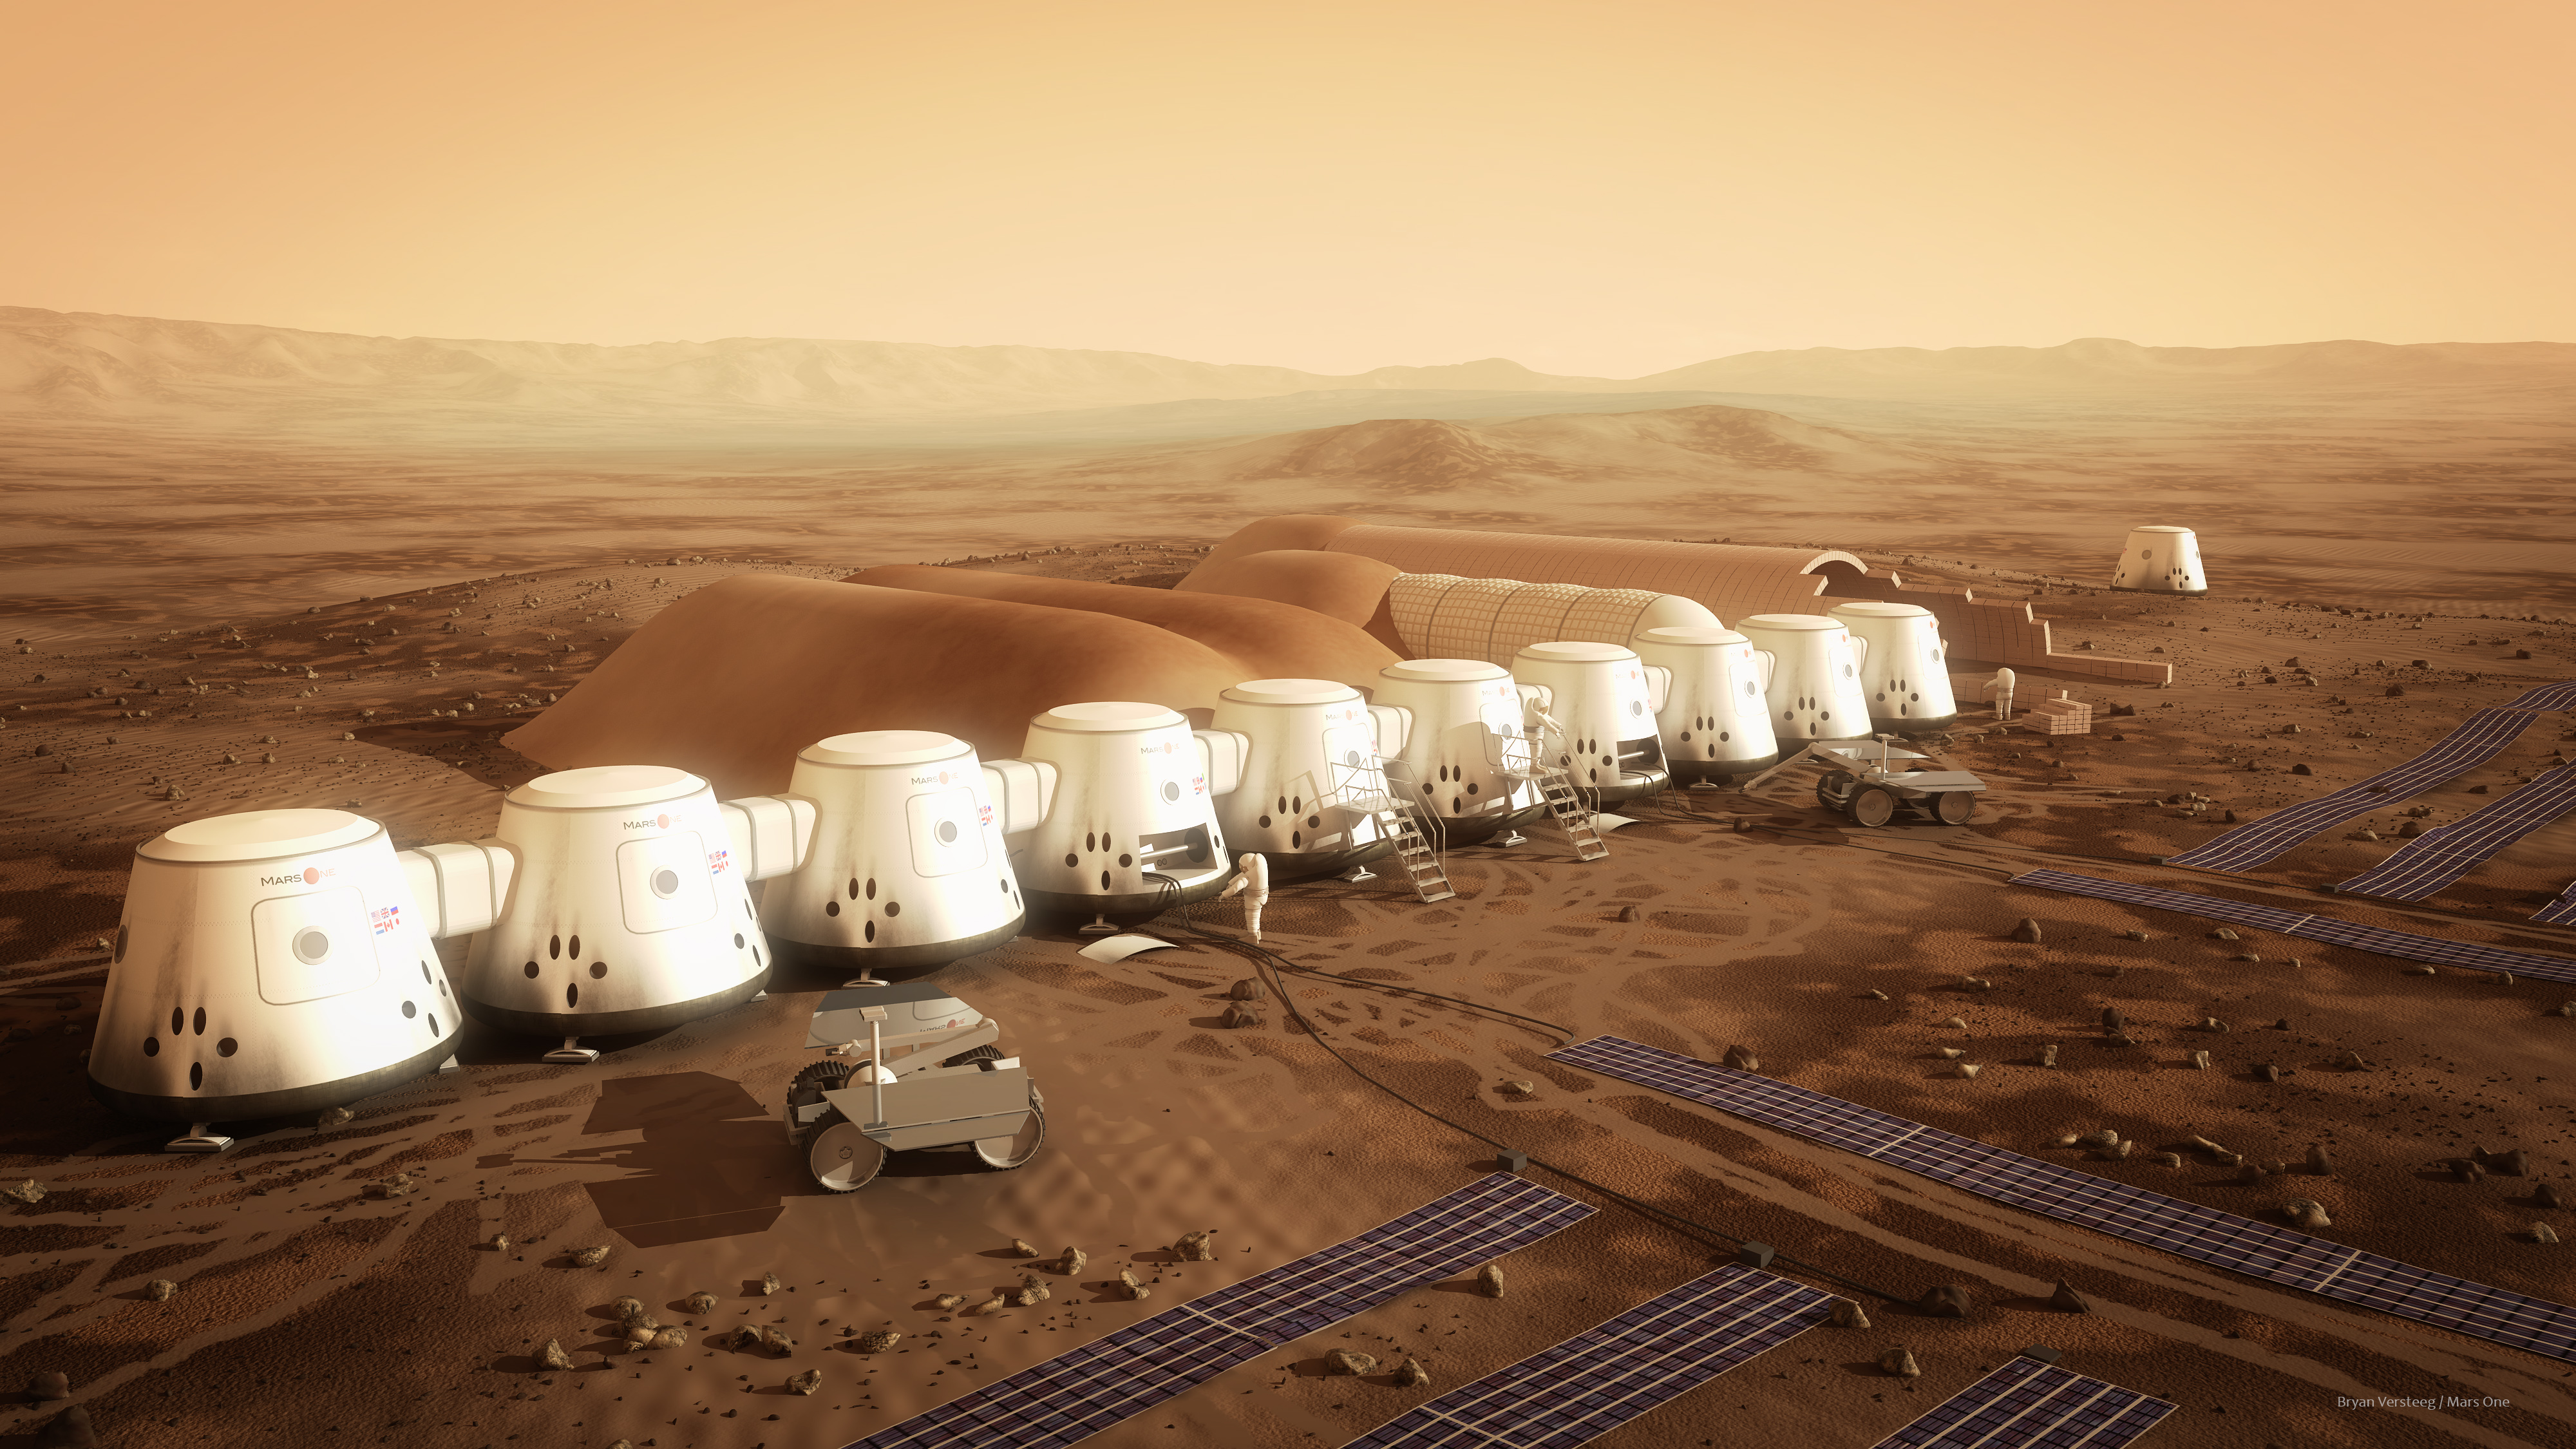 One-Way Mars Colony Project to Simulate Red Planet on Earth